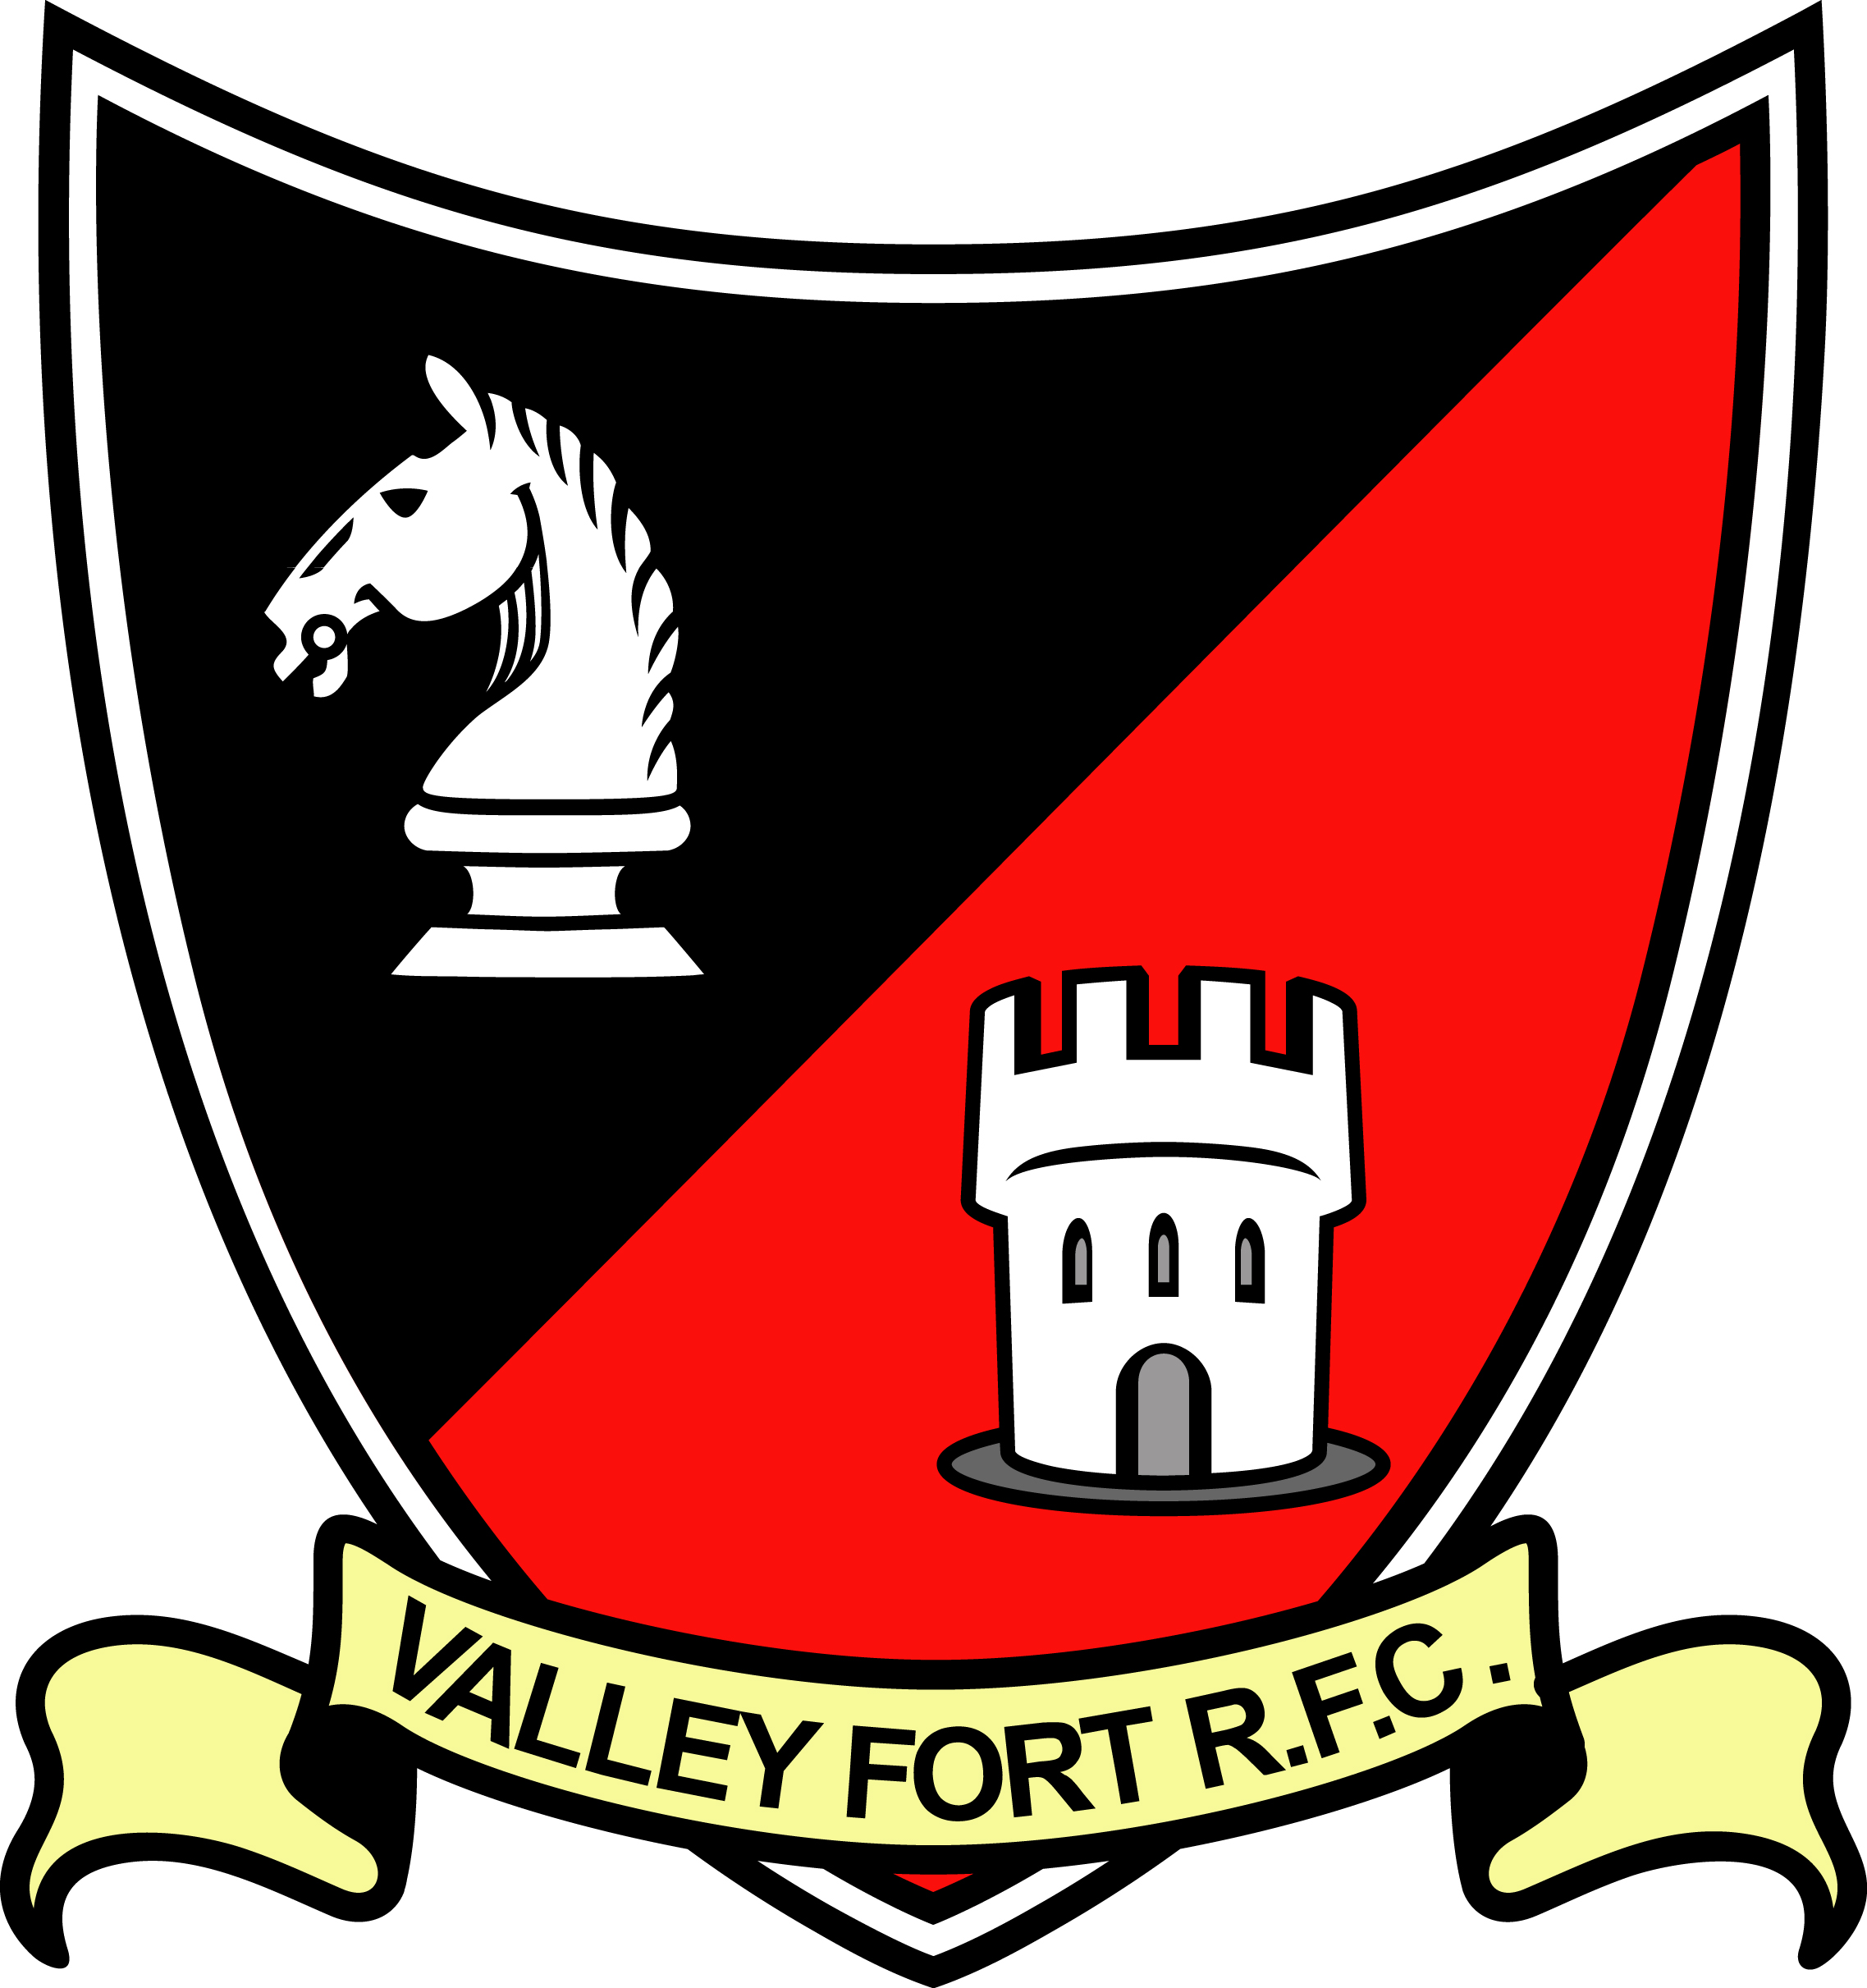 Valley Fort